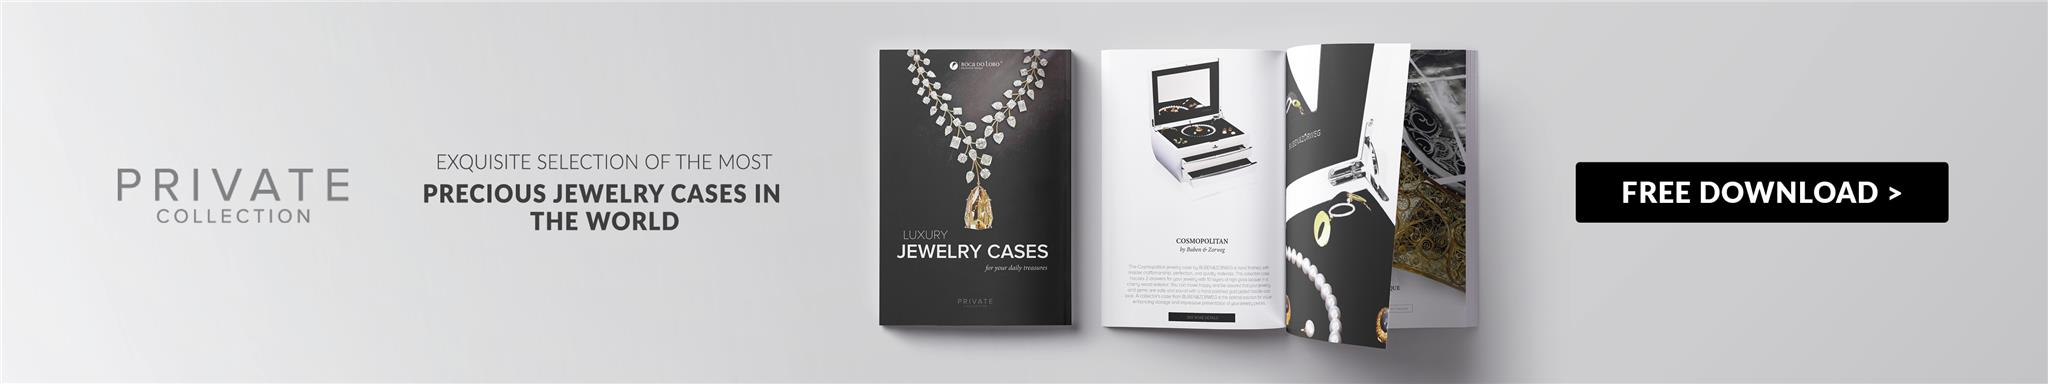 disrepute Sneek Peak: Exclusive Interior Design of Disrepute precious jewelry cases in the world banner